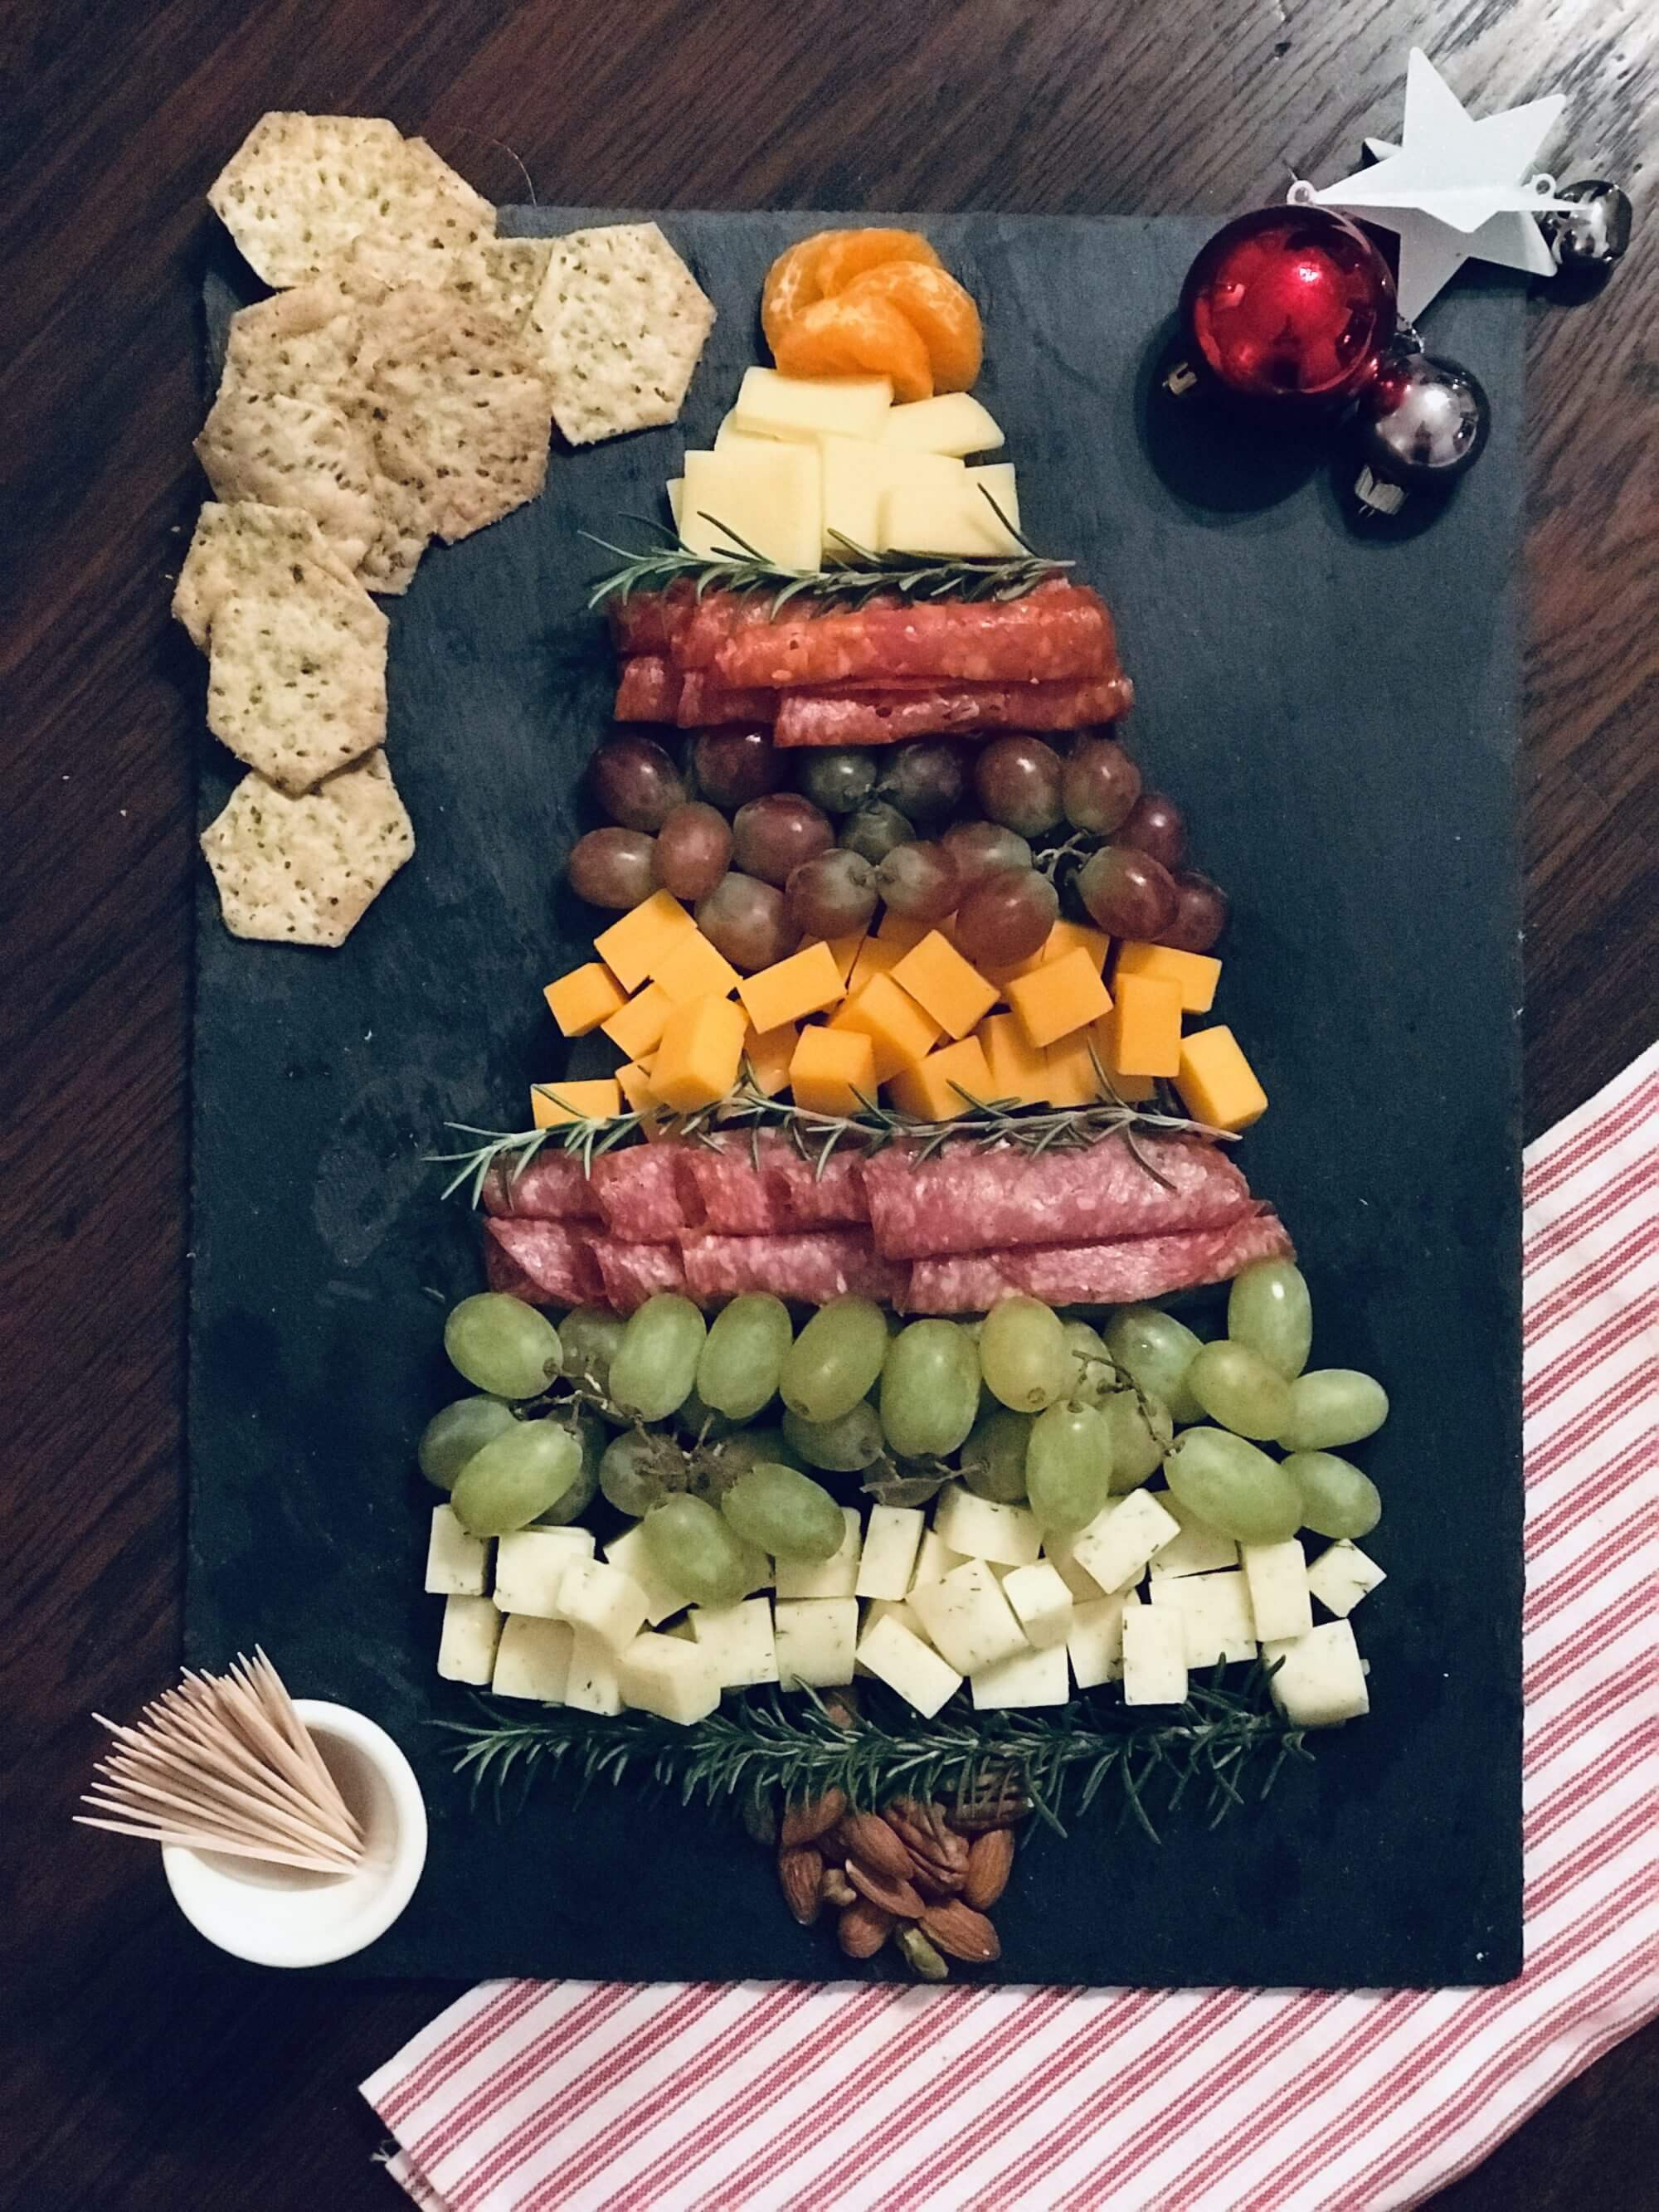 Make holiday entertaining easy and affordable with this holiday dinner party menu that tastes delicious and uses better-for-you ingredients from ALDI. #holidayentertaining #christmasparty #aldi